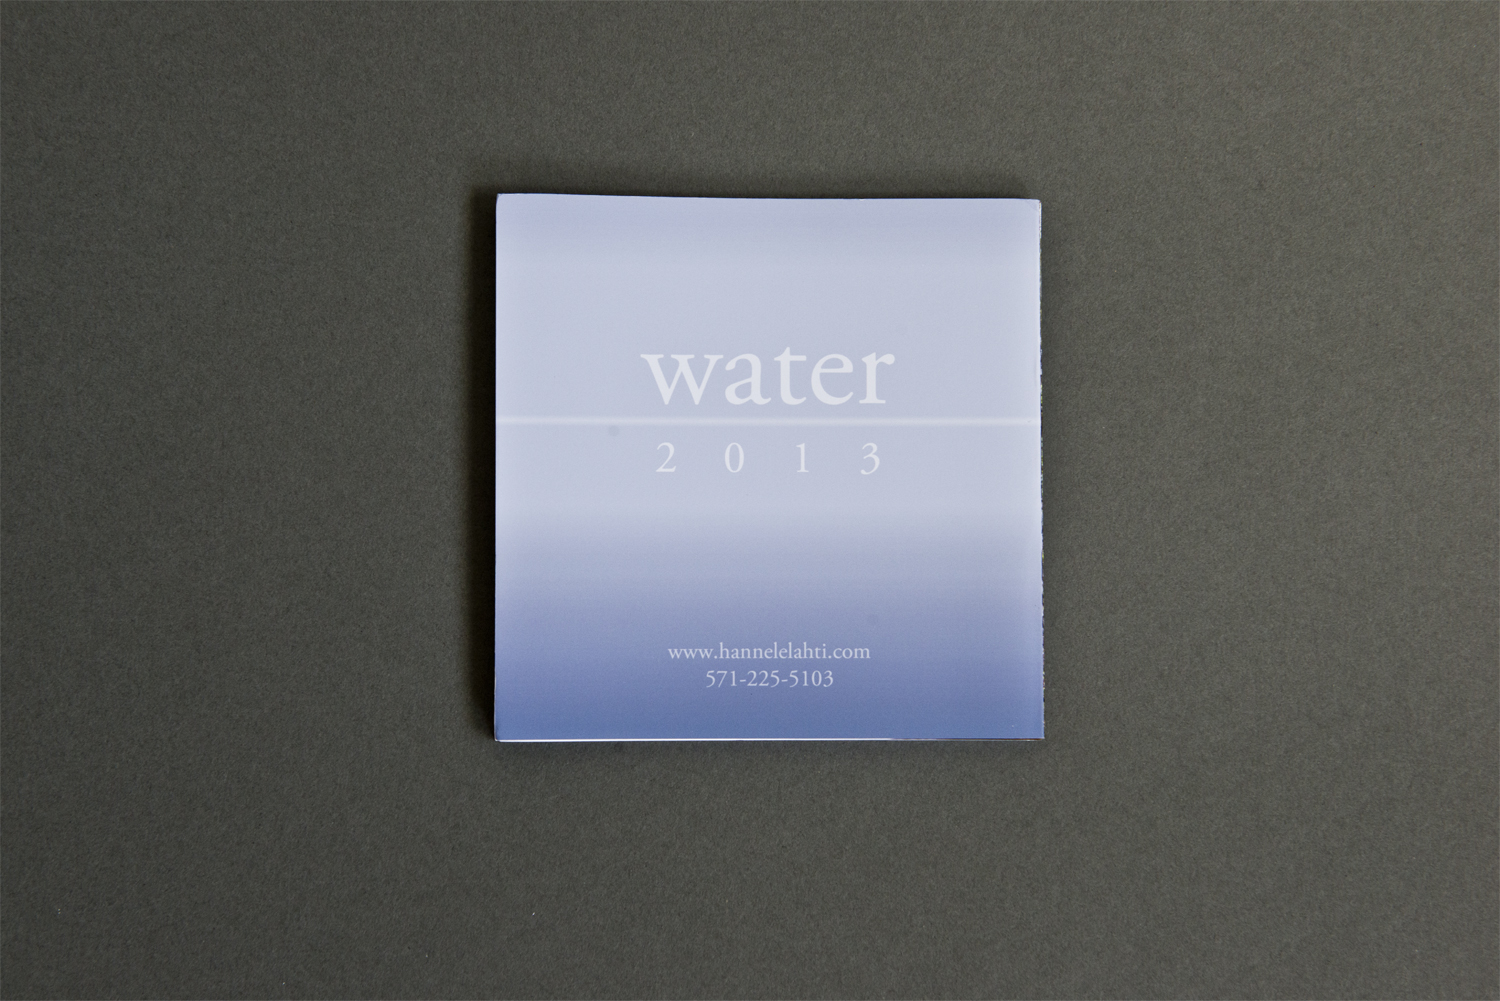 This beautiful accordion book,  Water , from photographer Hannele Lahti was submitted to Promo of the Week. We liked that the book arrived in clear plastic, allowing us to see immediately what might be inside.